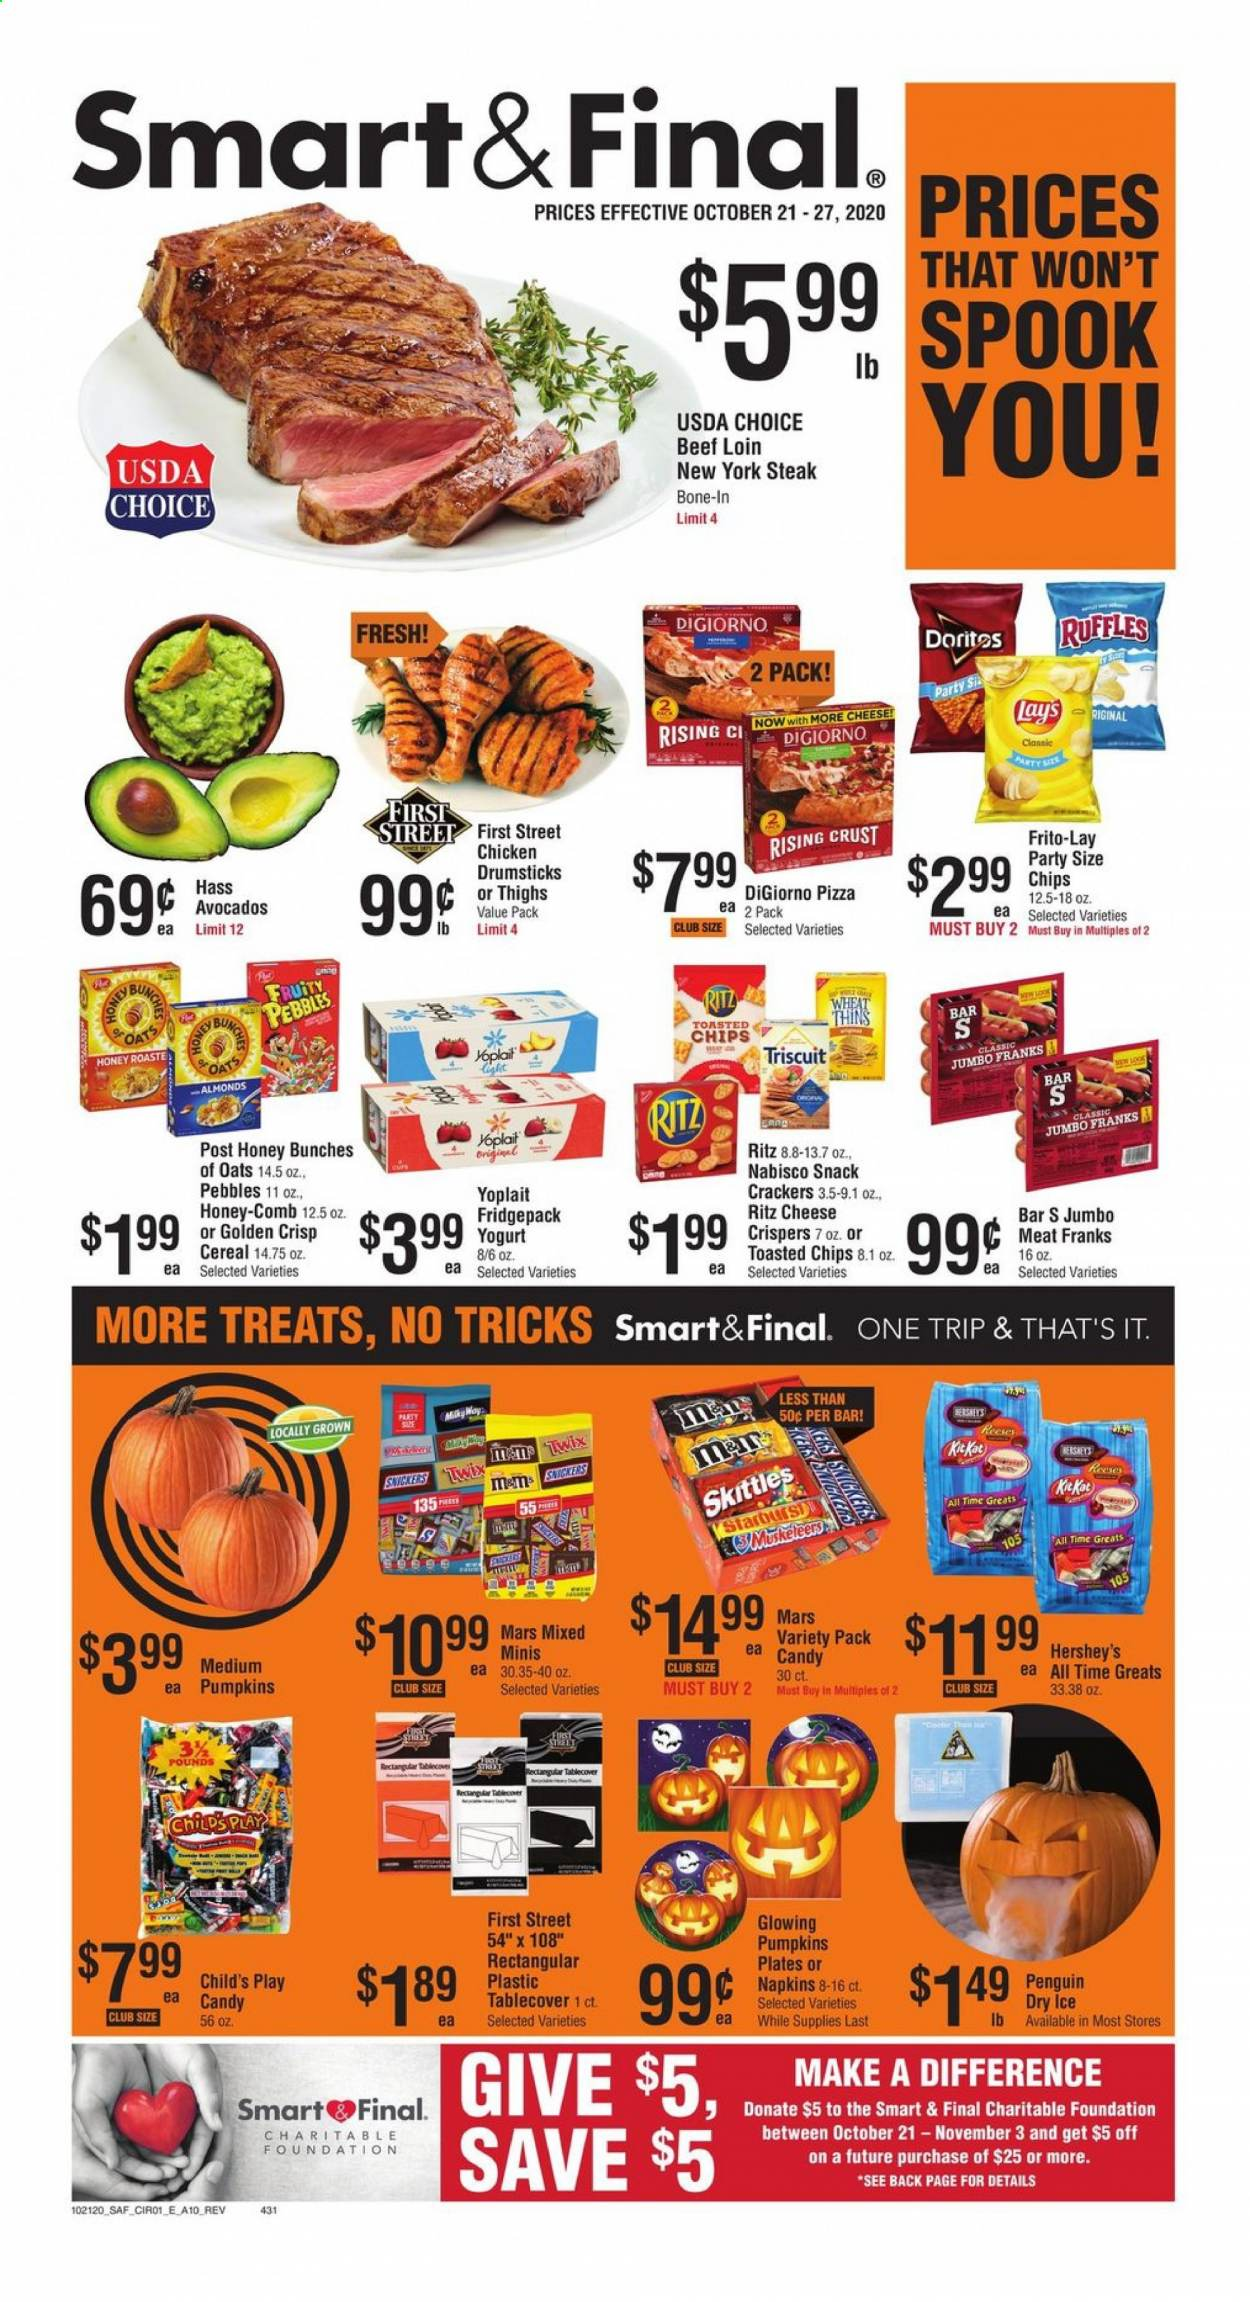 Smart & Final Flyer - 10.21.2020 - 10.27.2020 - Sales products - almonds, avocado, beef meat, cereals, Doritos, honey, pizza, plate, chicken, penguin, oats, chips, steak, cheese, candy, snack, Twix, Mars, napkins, Bunches. Page 1.